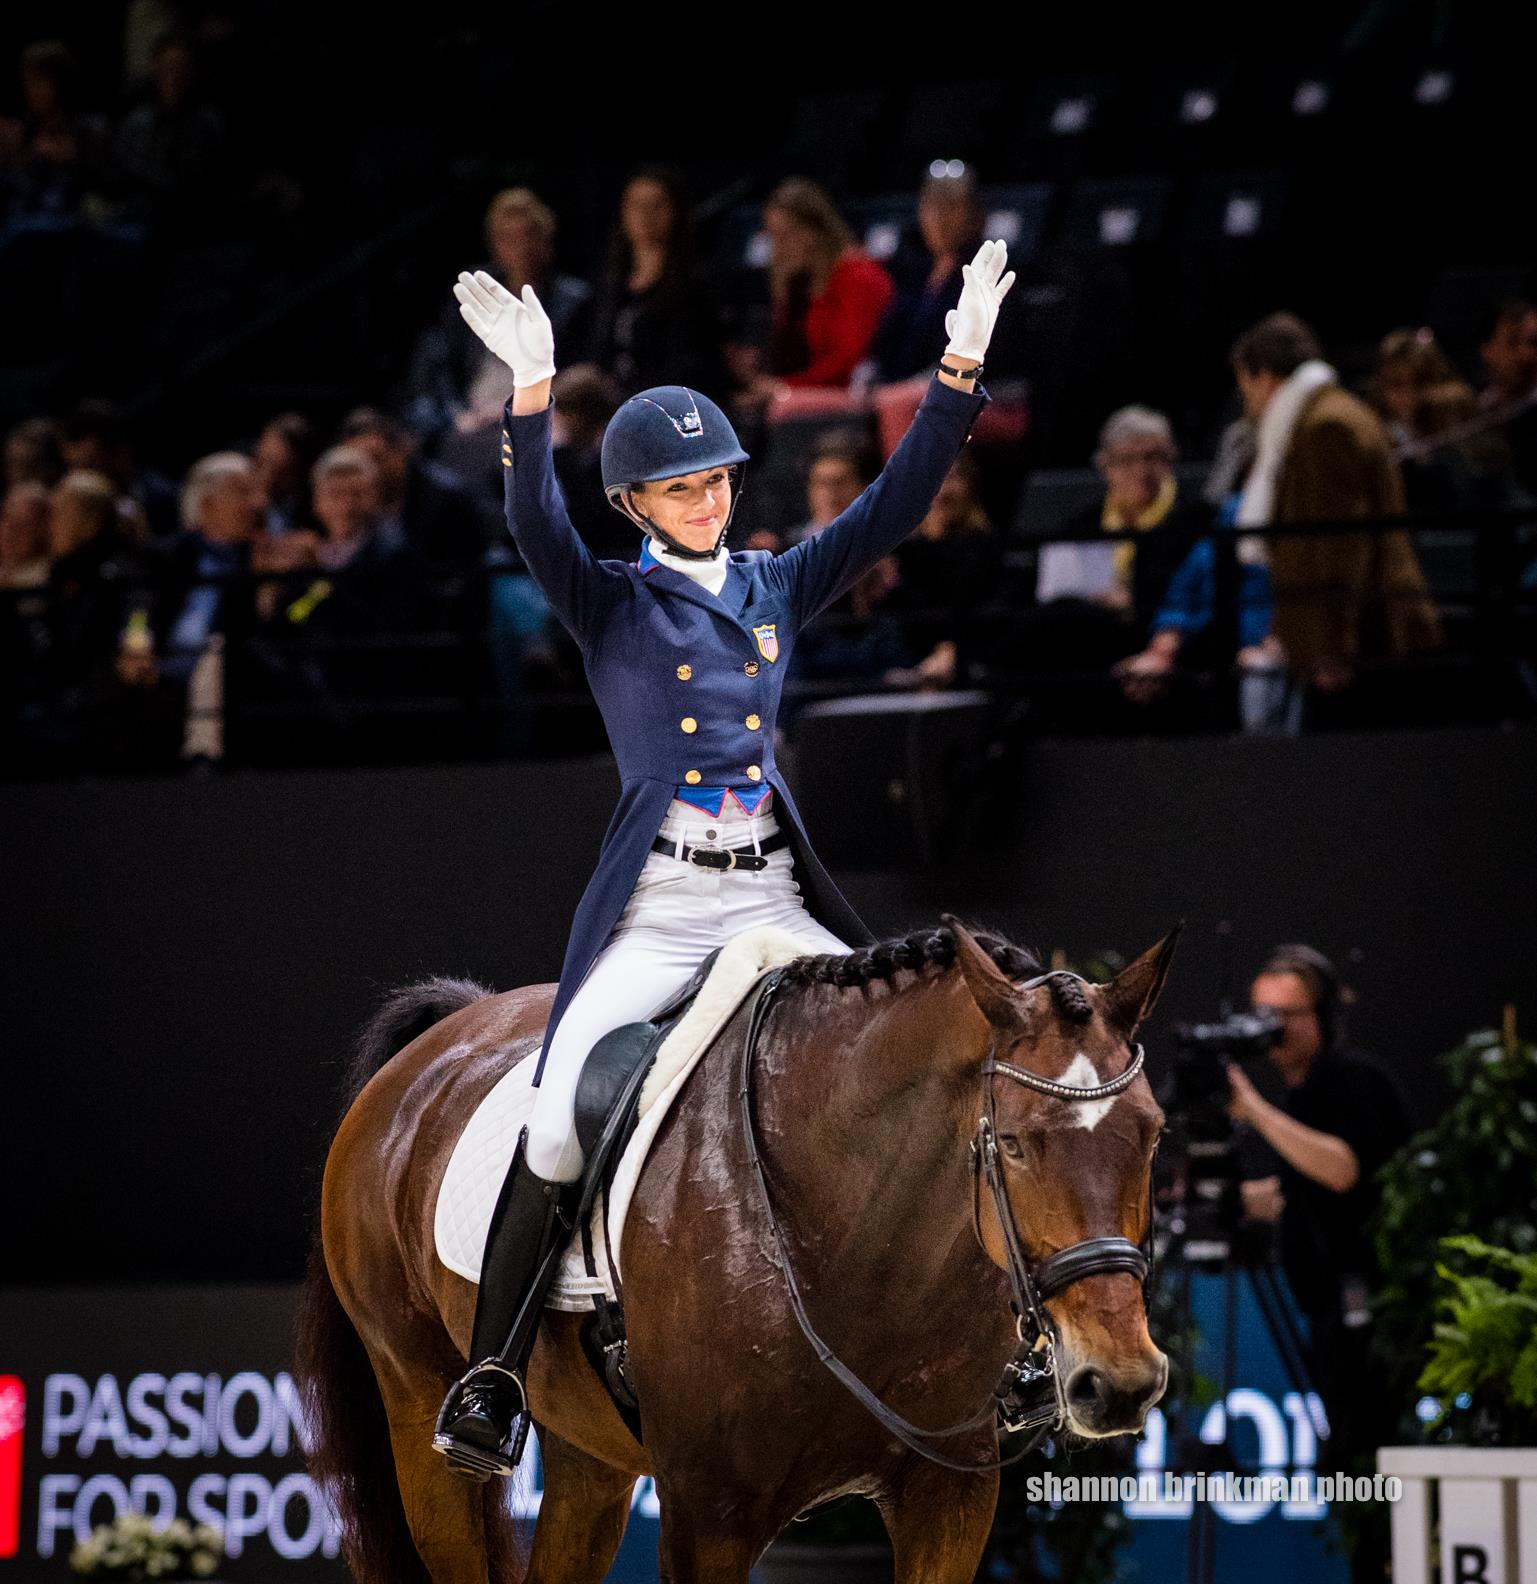 Laura Graves And Verdades Defend Second Place In Back To